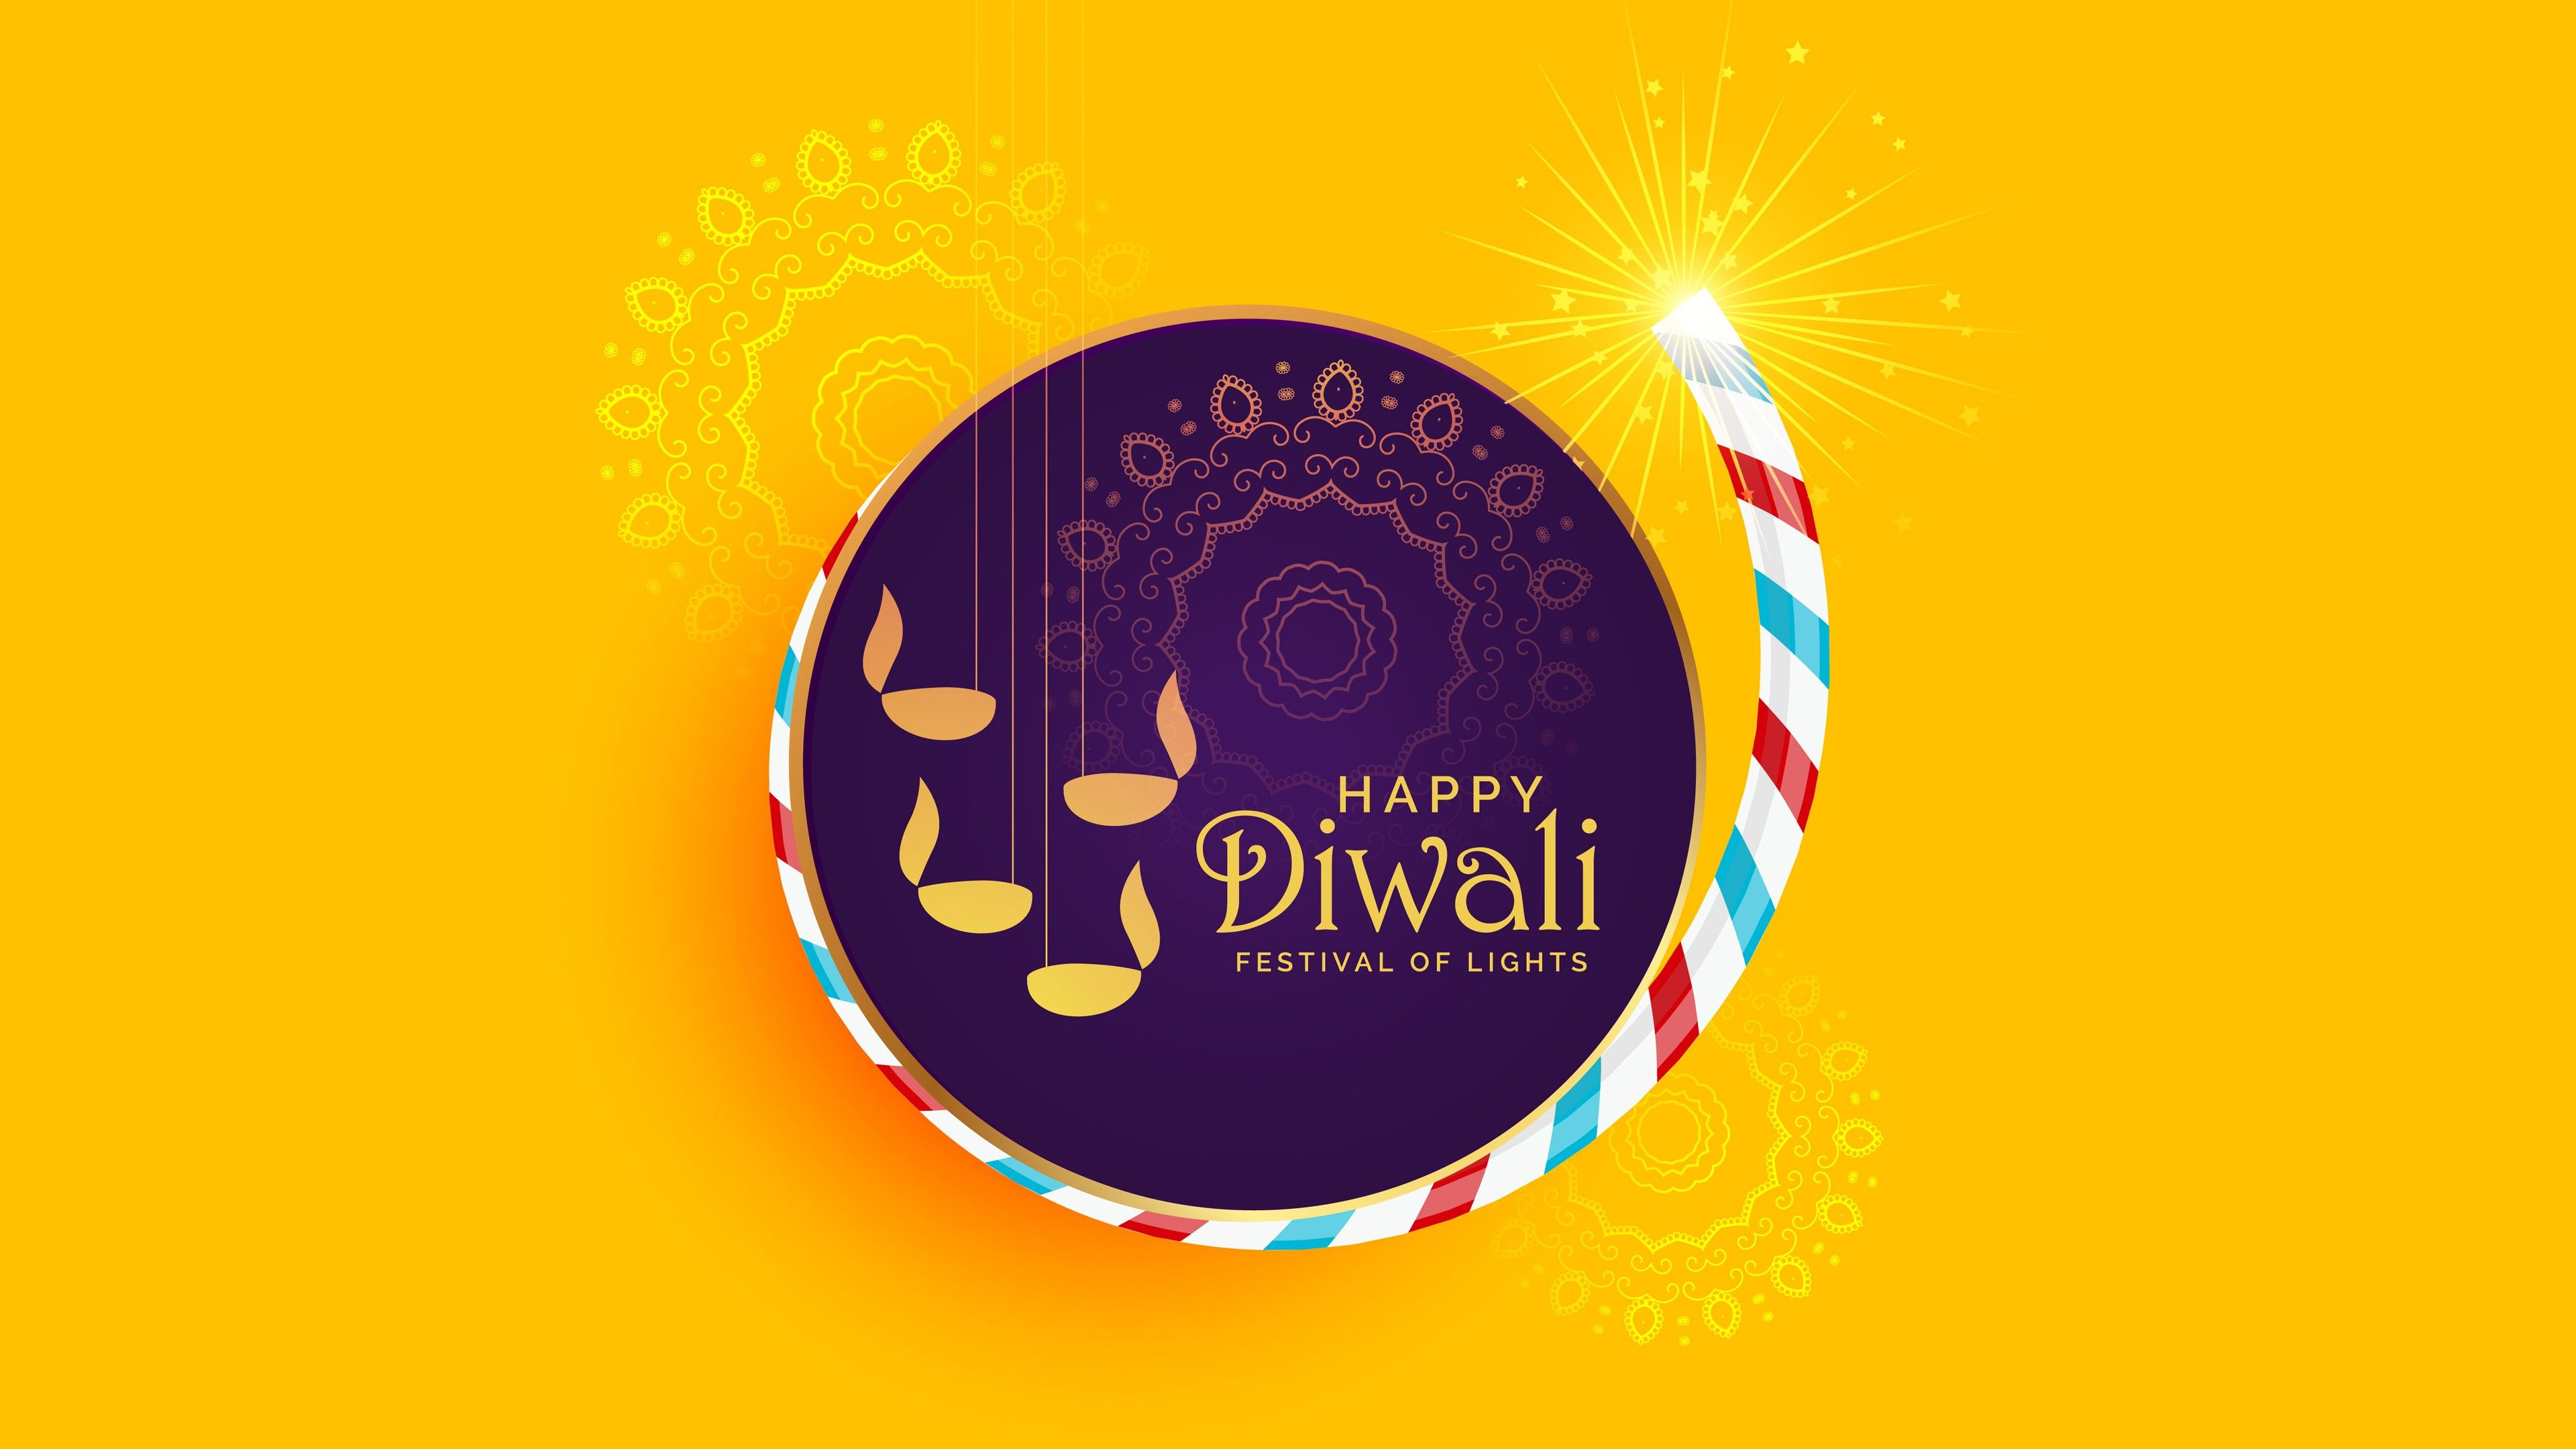 3840x2160 4K Wallpaper of Happy Diwali Festival | HD Wallpapers